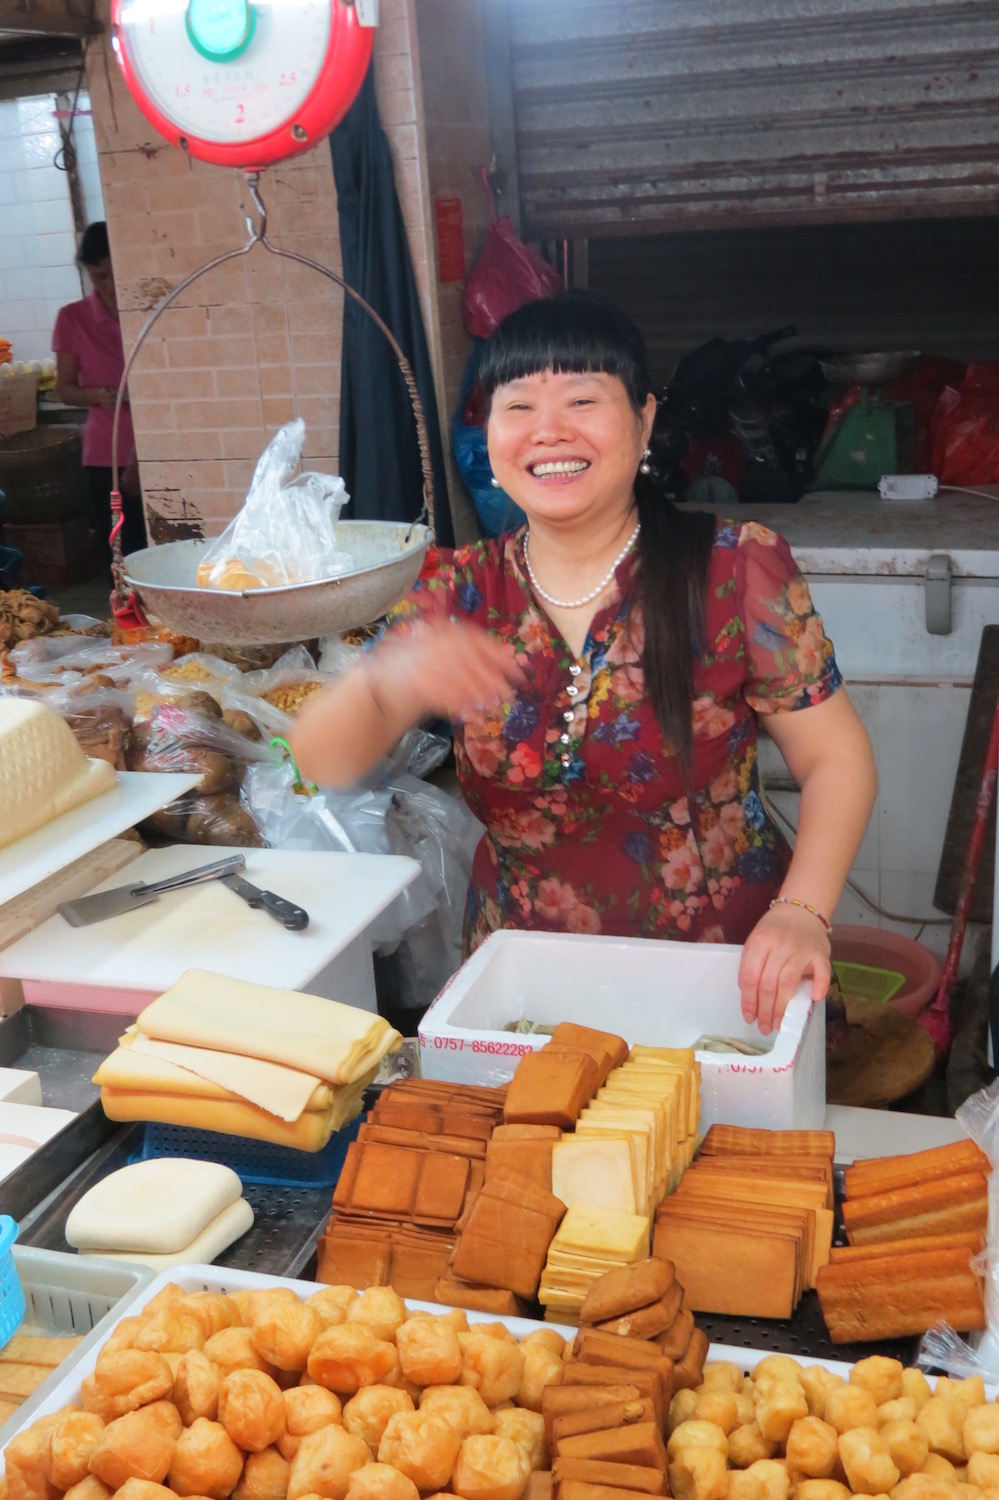 Tofu vendor in Guangzhou's Enning Road Market